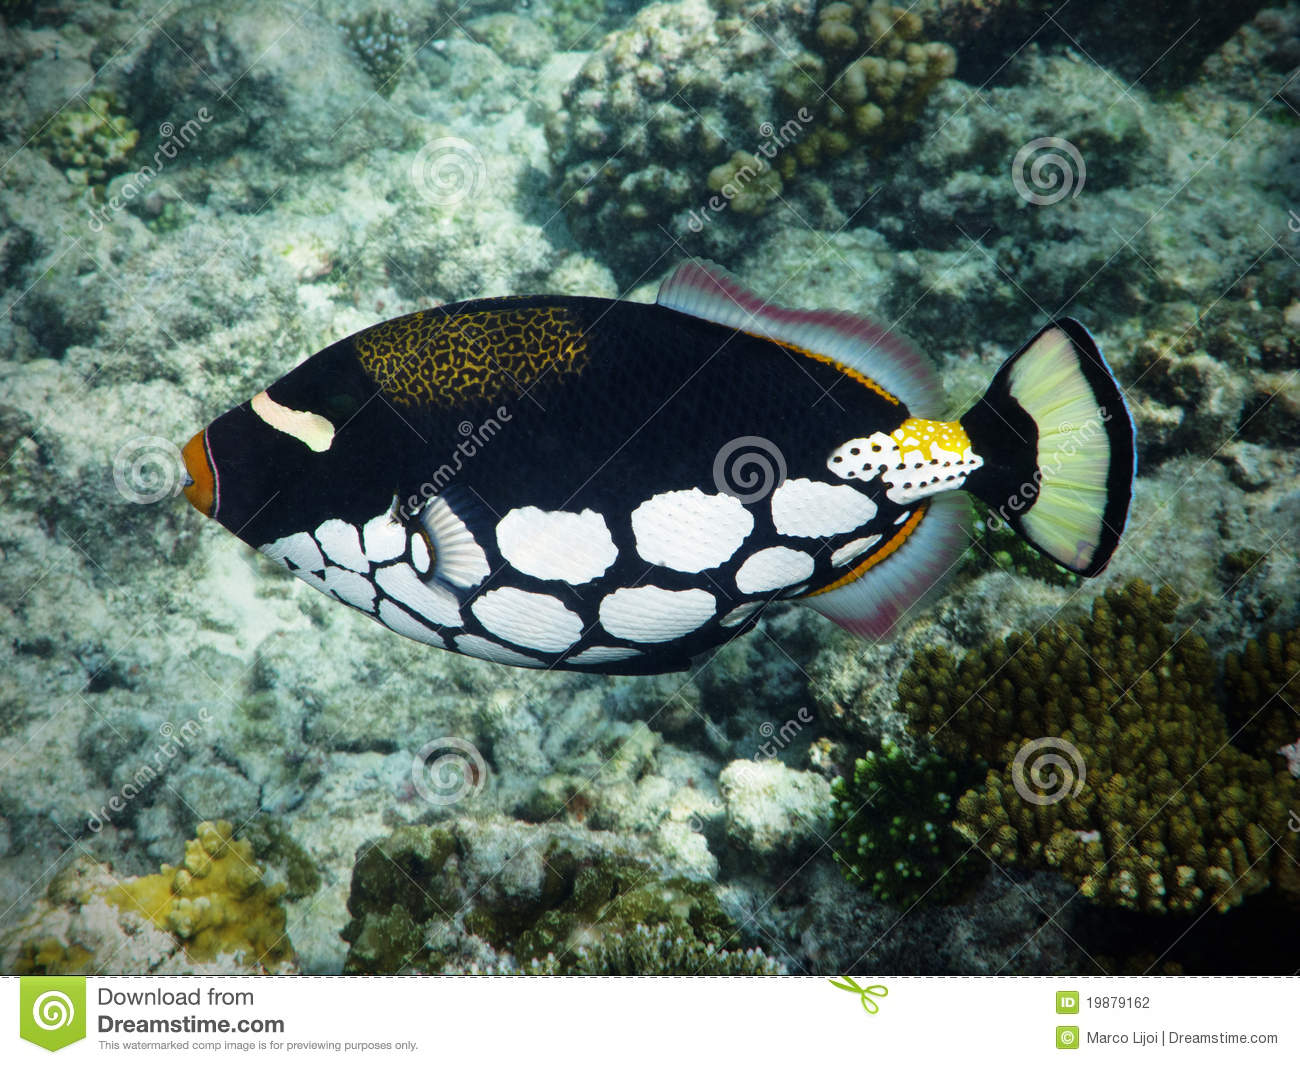 Clown triggerfish in Maldives